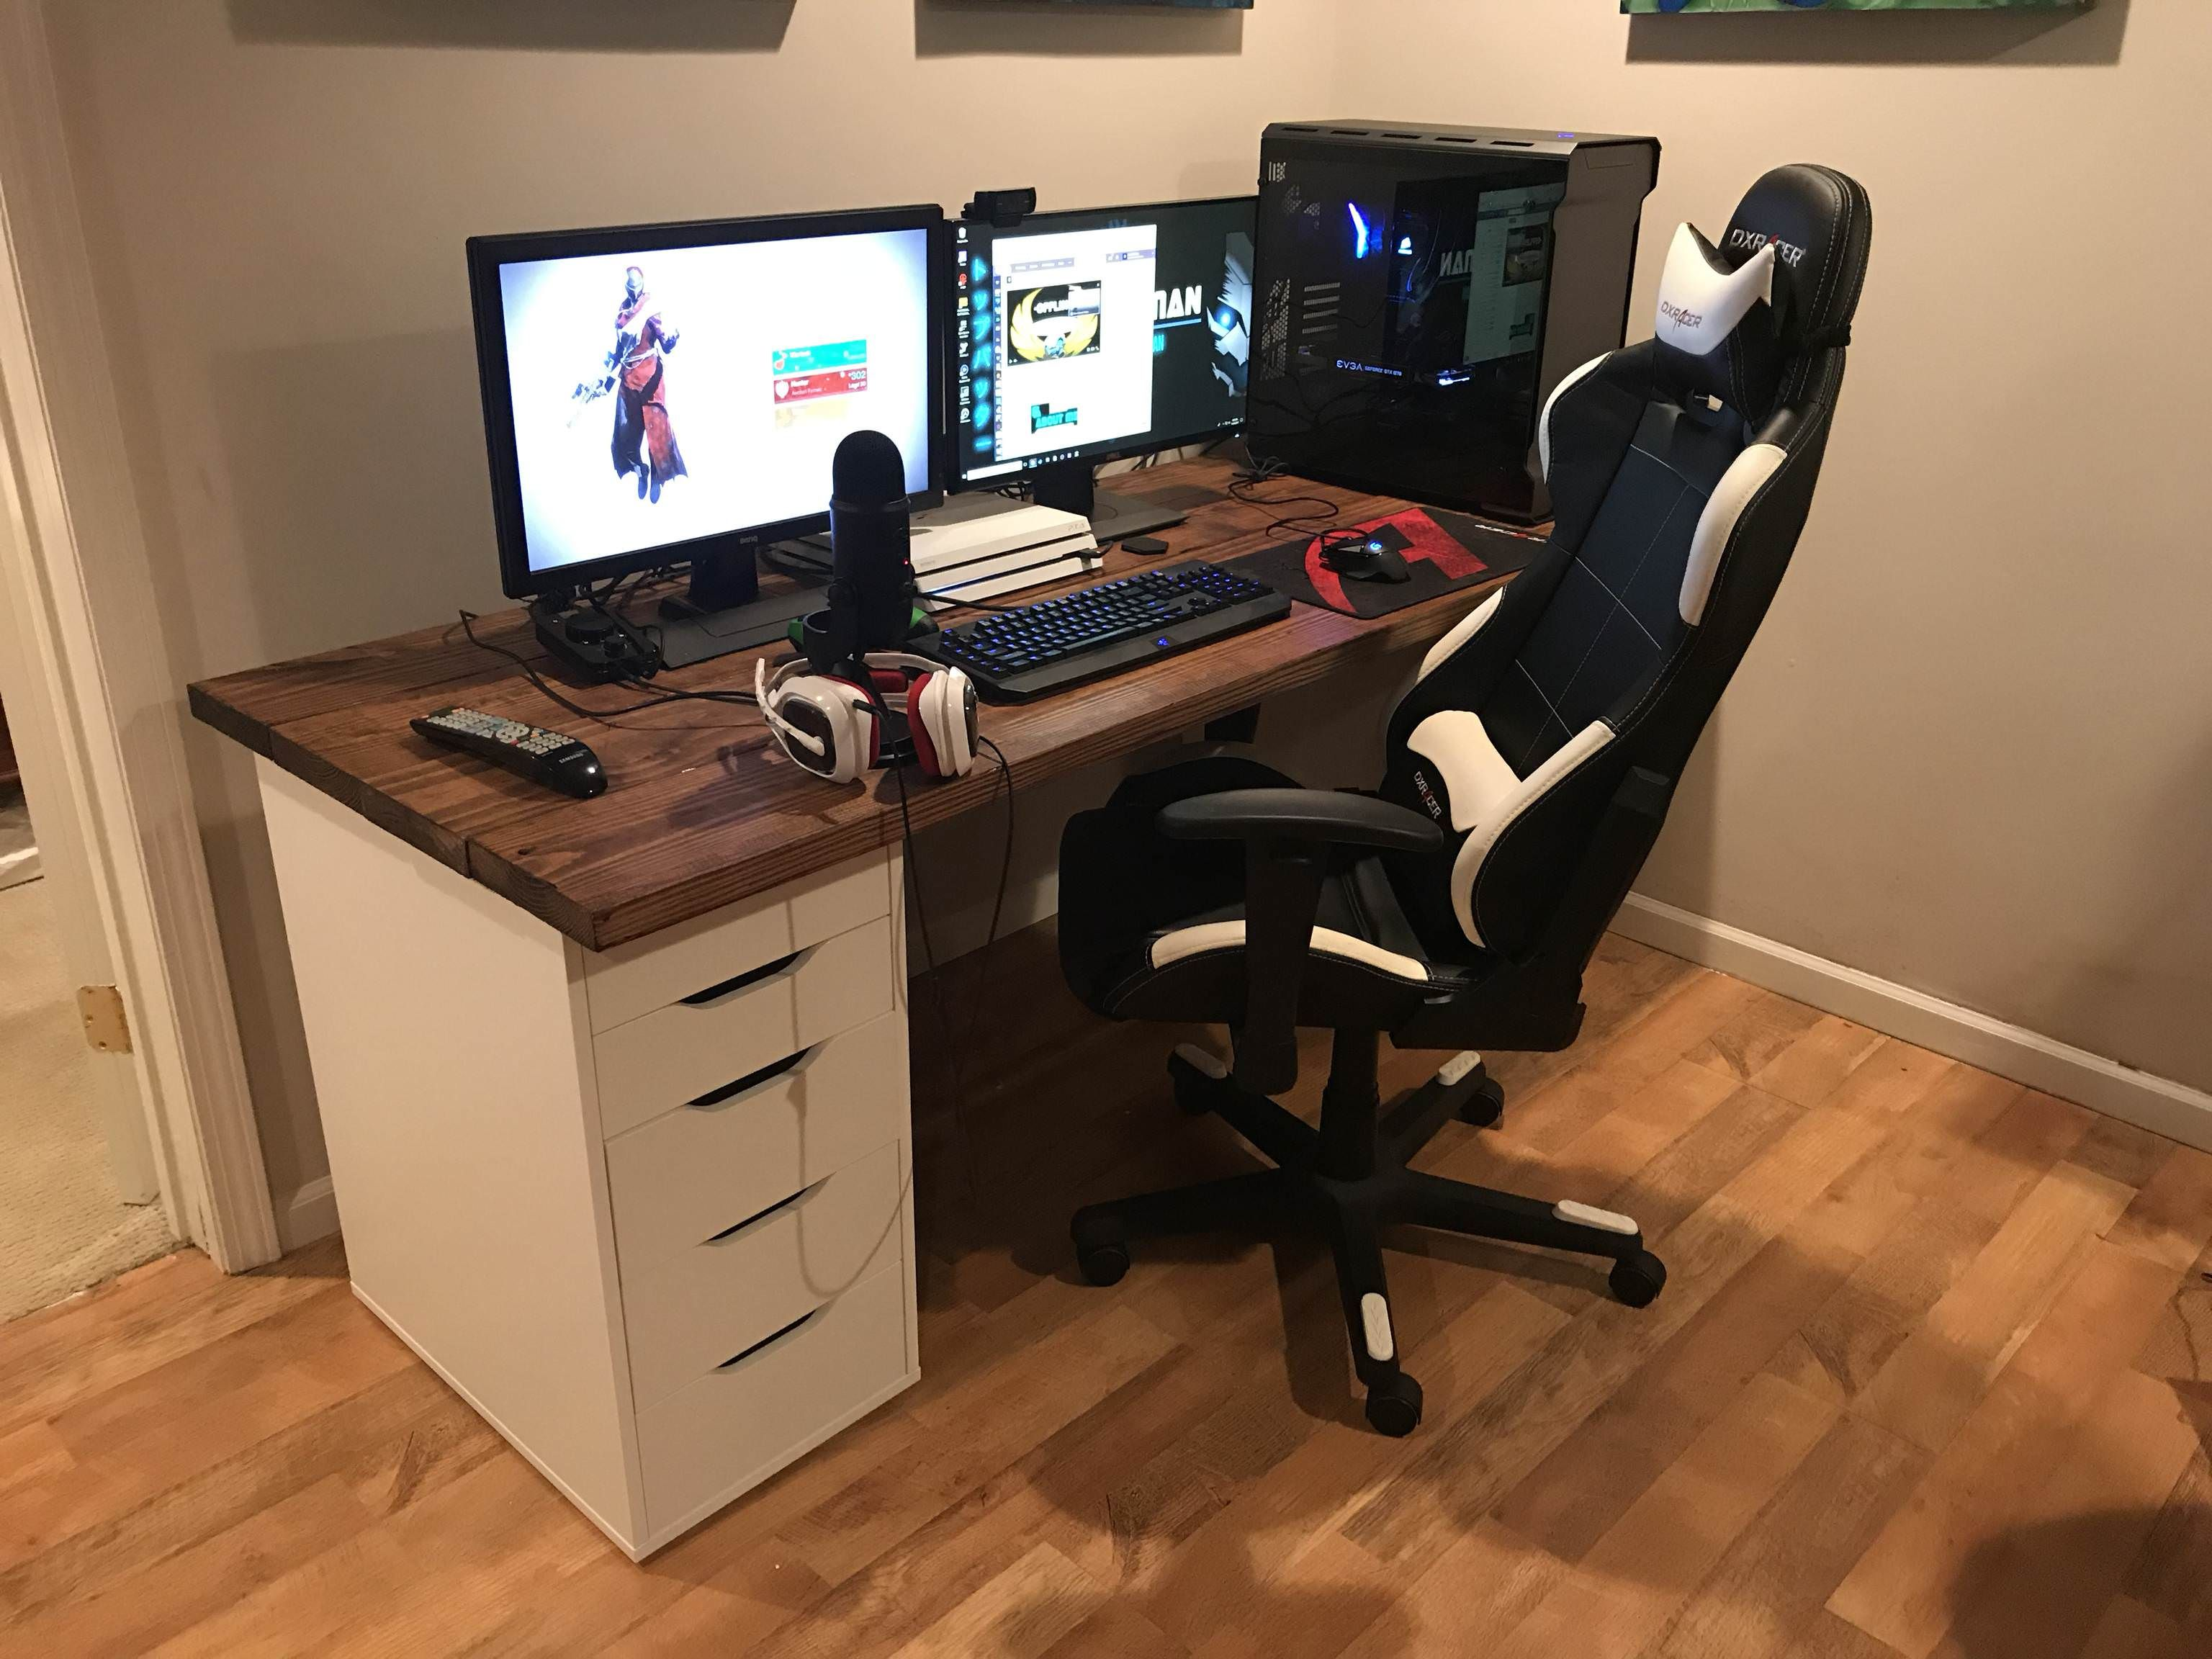 Moved From My Old Setup In The Living Room To A New Setup In My Gaming Room Gaming Room Setup Game Room Desk In Living Room